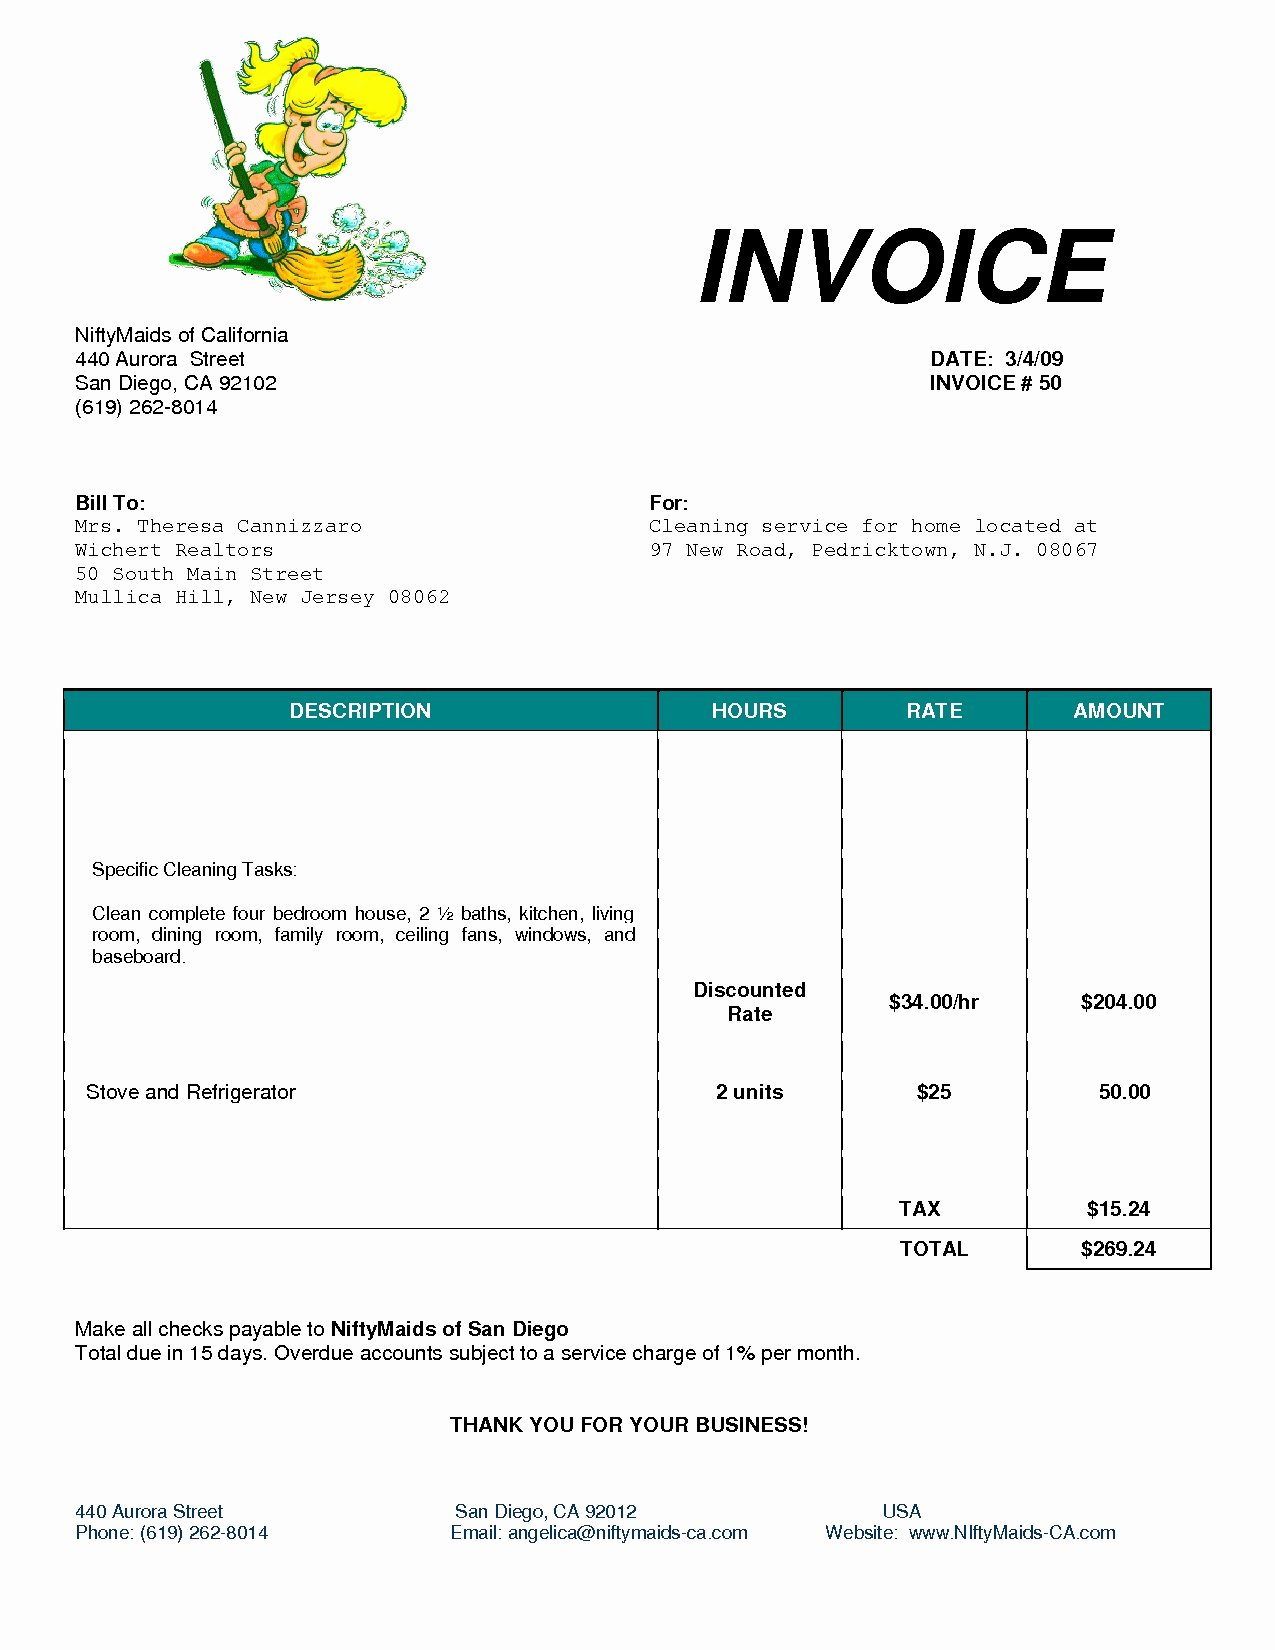 Service Invoice Template Free Lovely Cleaning Services Invoice Sample Invoice Template Ideas